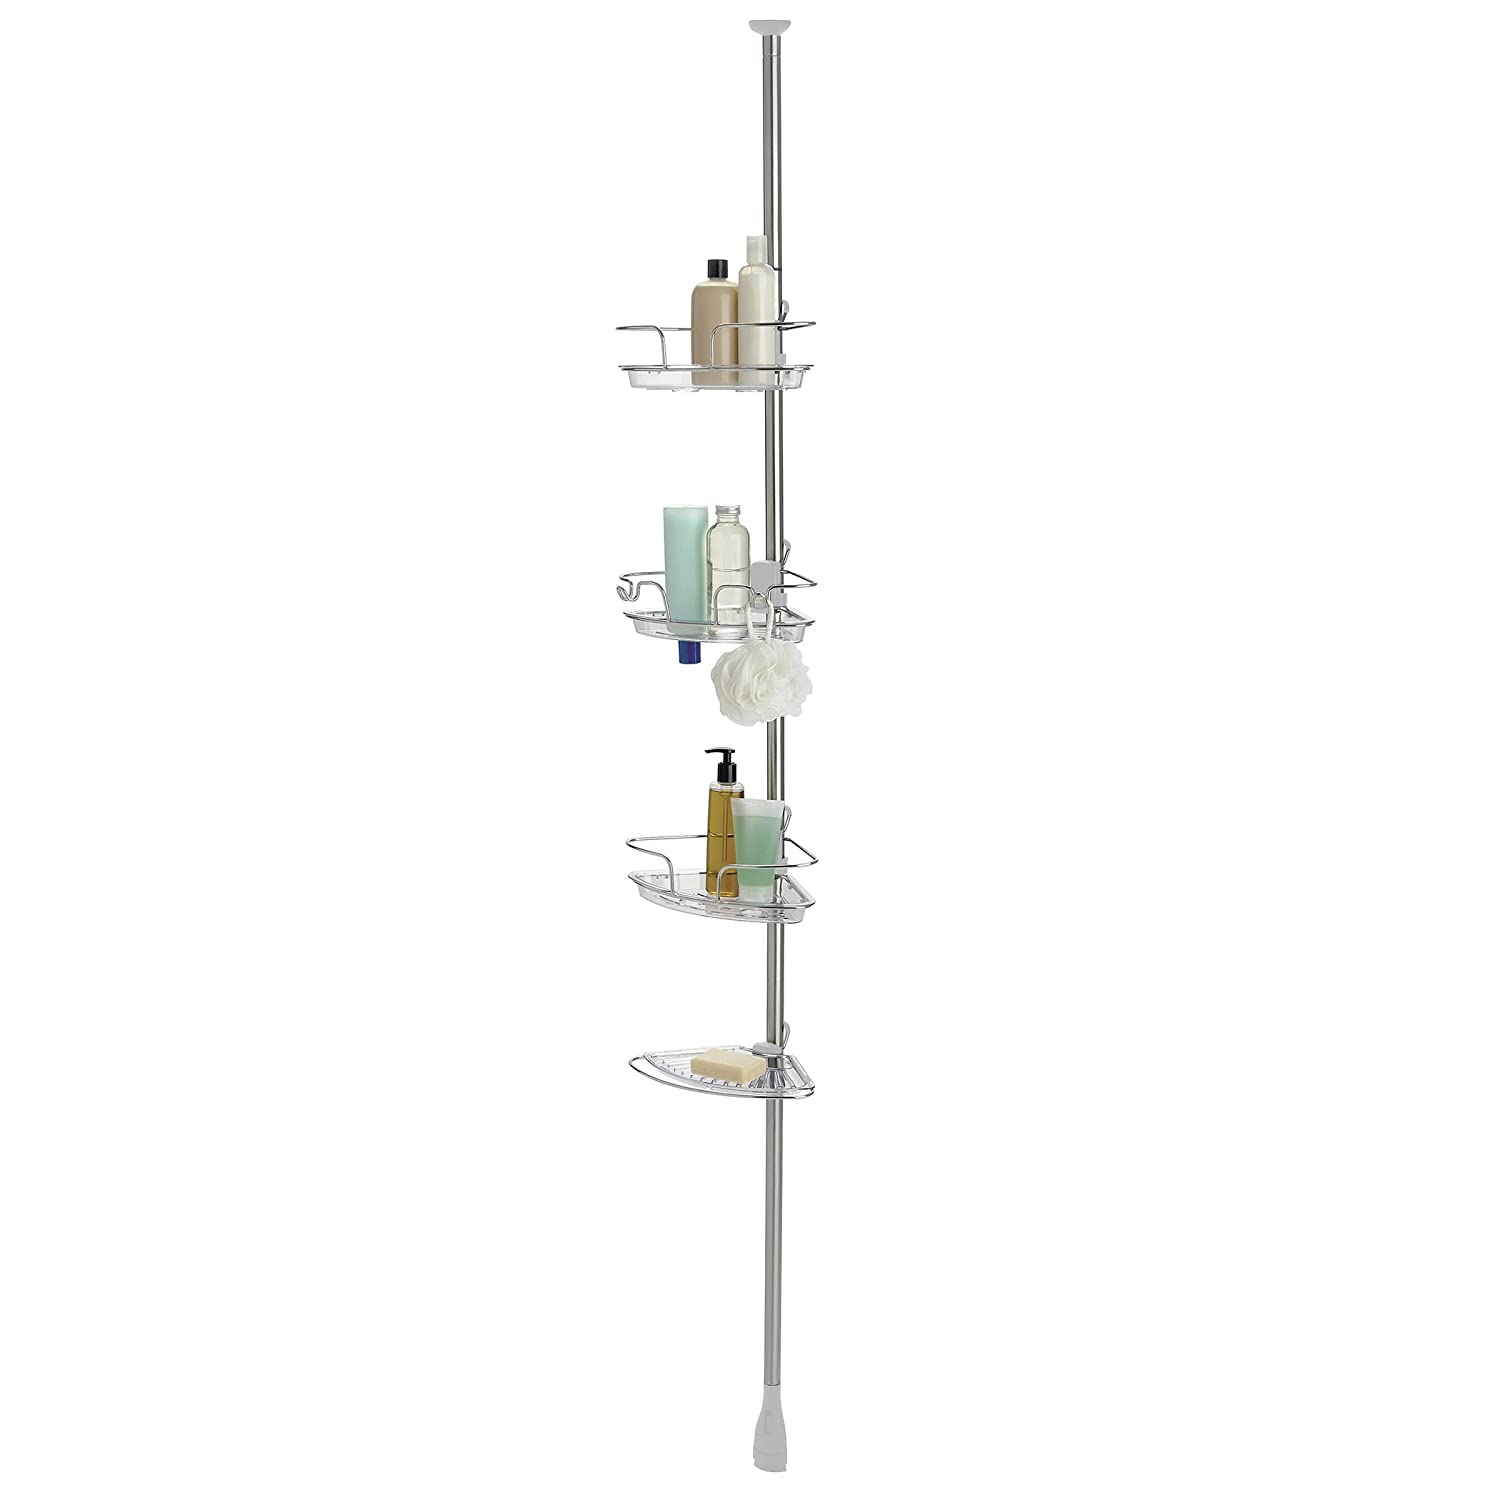 "CDM product OXO Good Grips Lift and Lock Pole Caddy, Stainless Steel, 60"" big image"